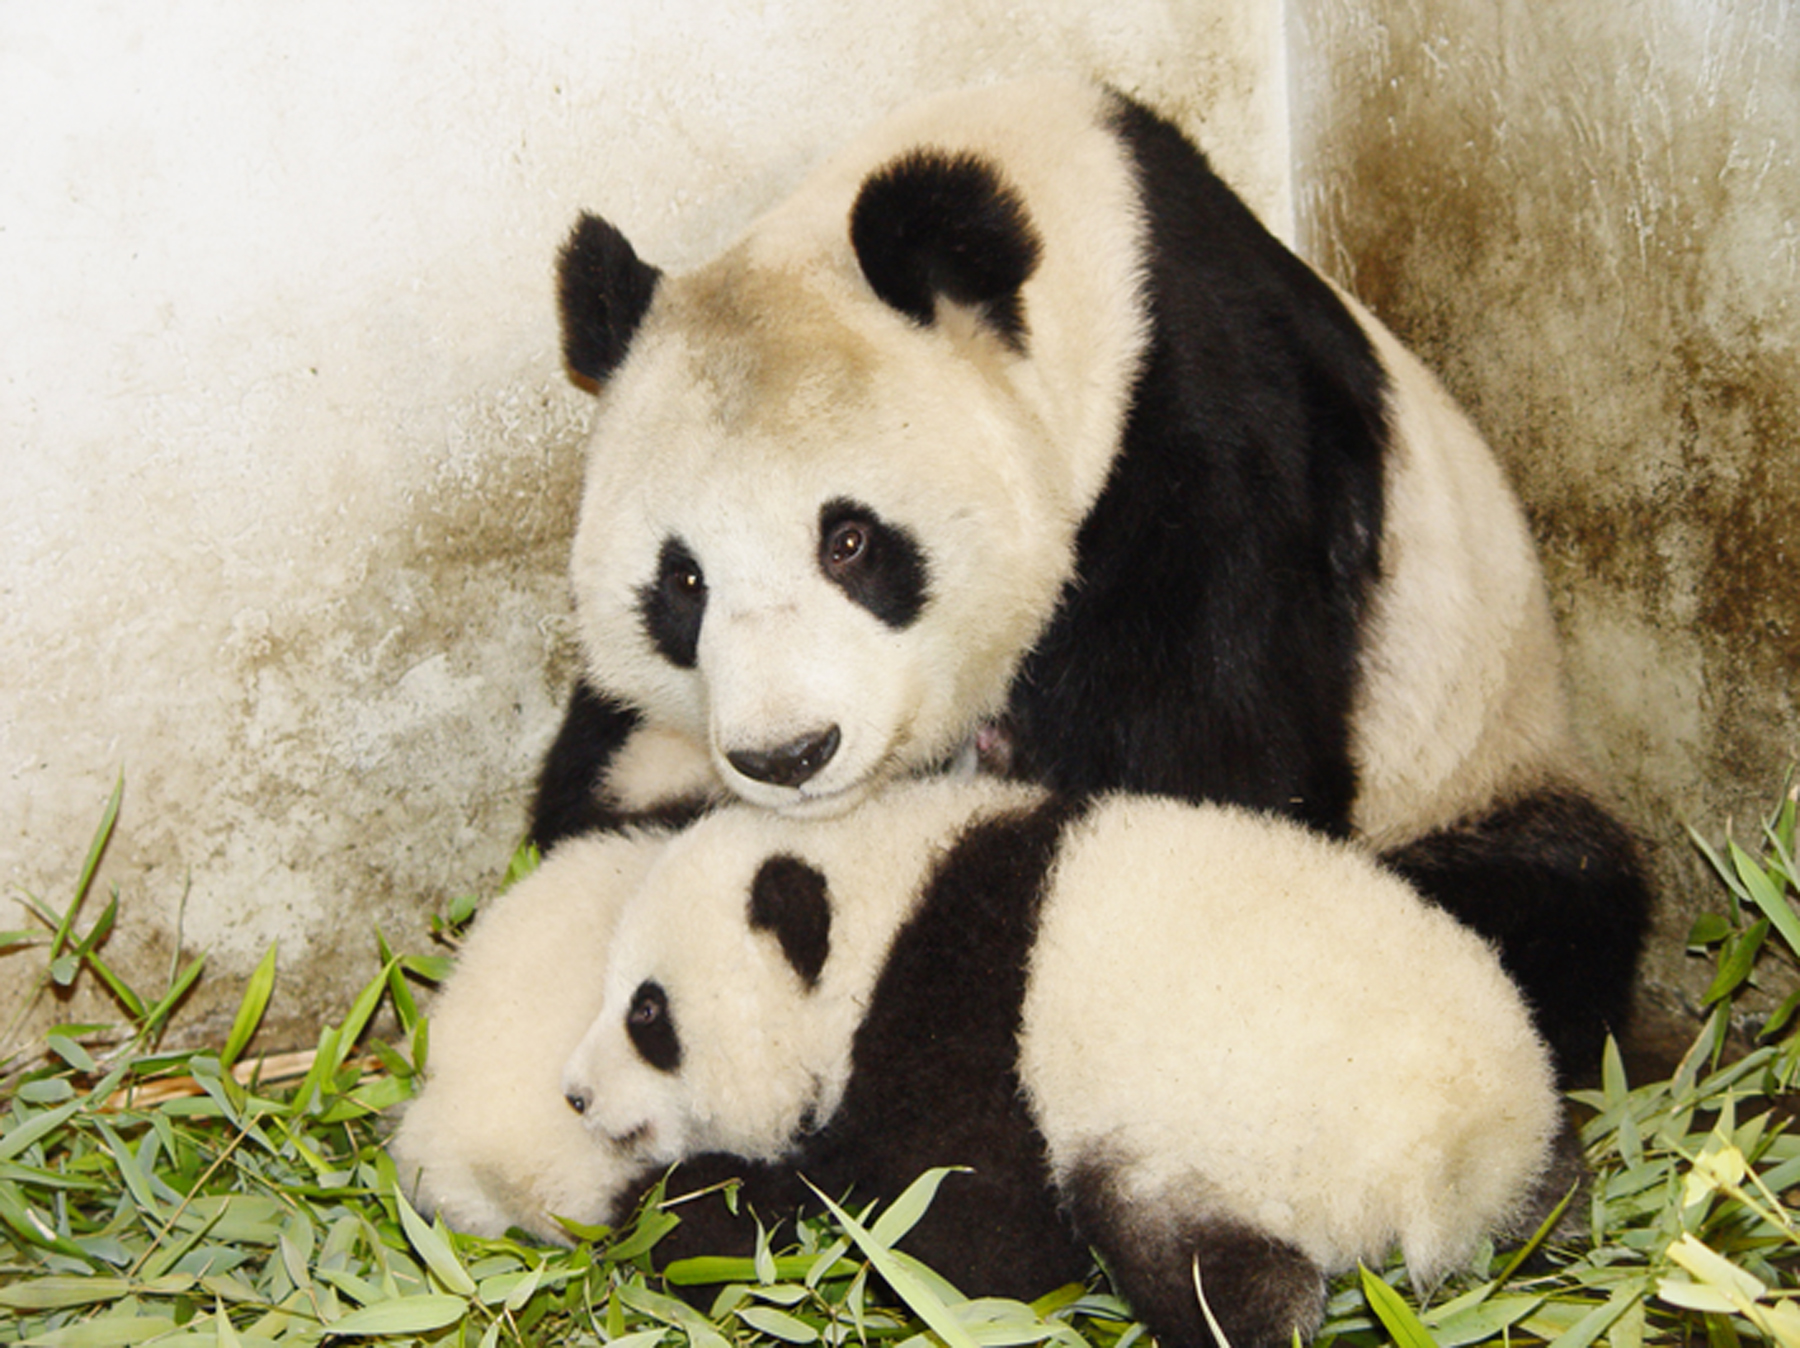 The Giant Pandas of Chine. Photo credit: Earthwatch Institute